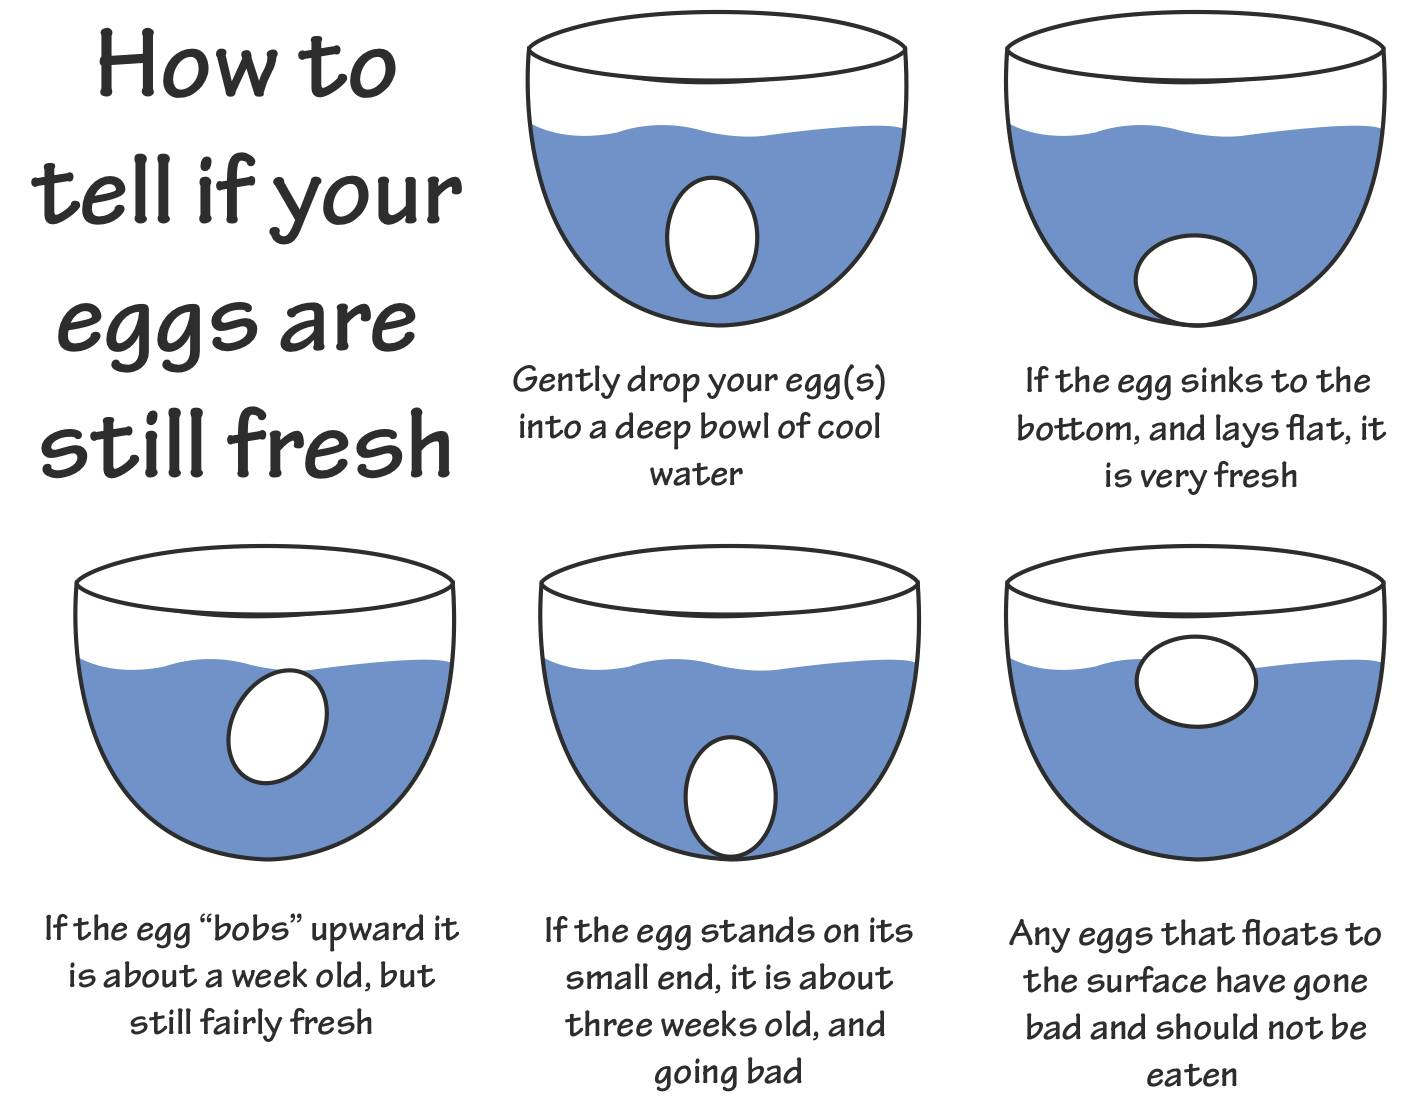 How To Tell If Your Eggs Are Still Fresh - Food - Nigeria